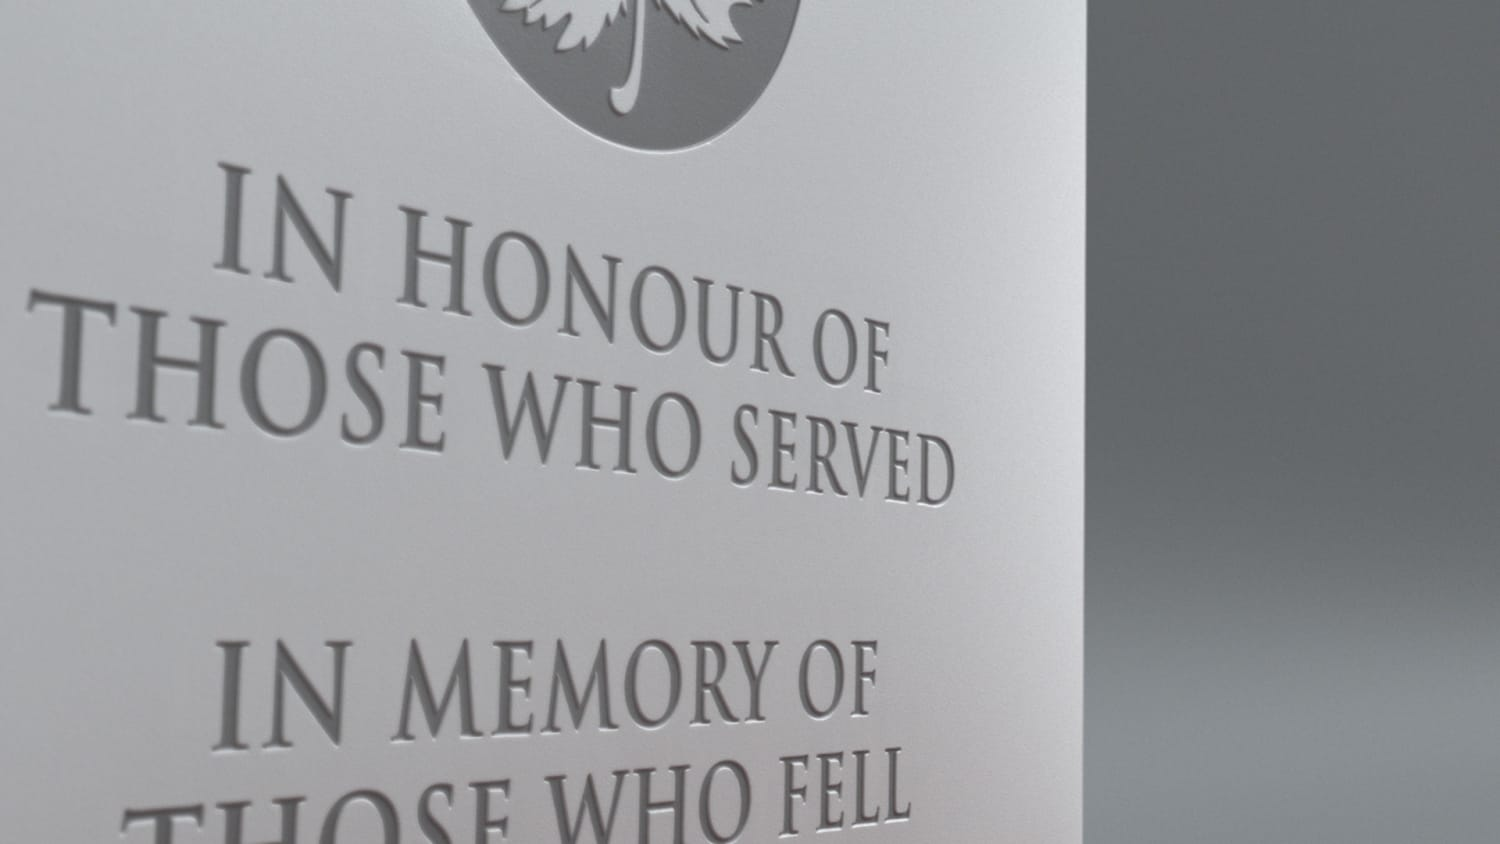 INSCRIPTION saying all capitals saying In Honour of Those Who Served. In Memory of Those Who Fell